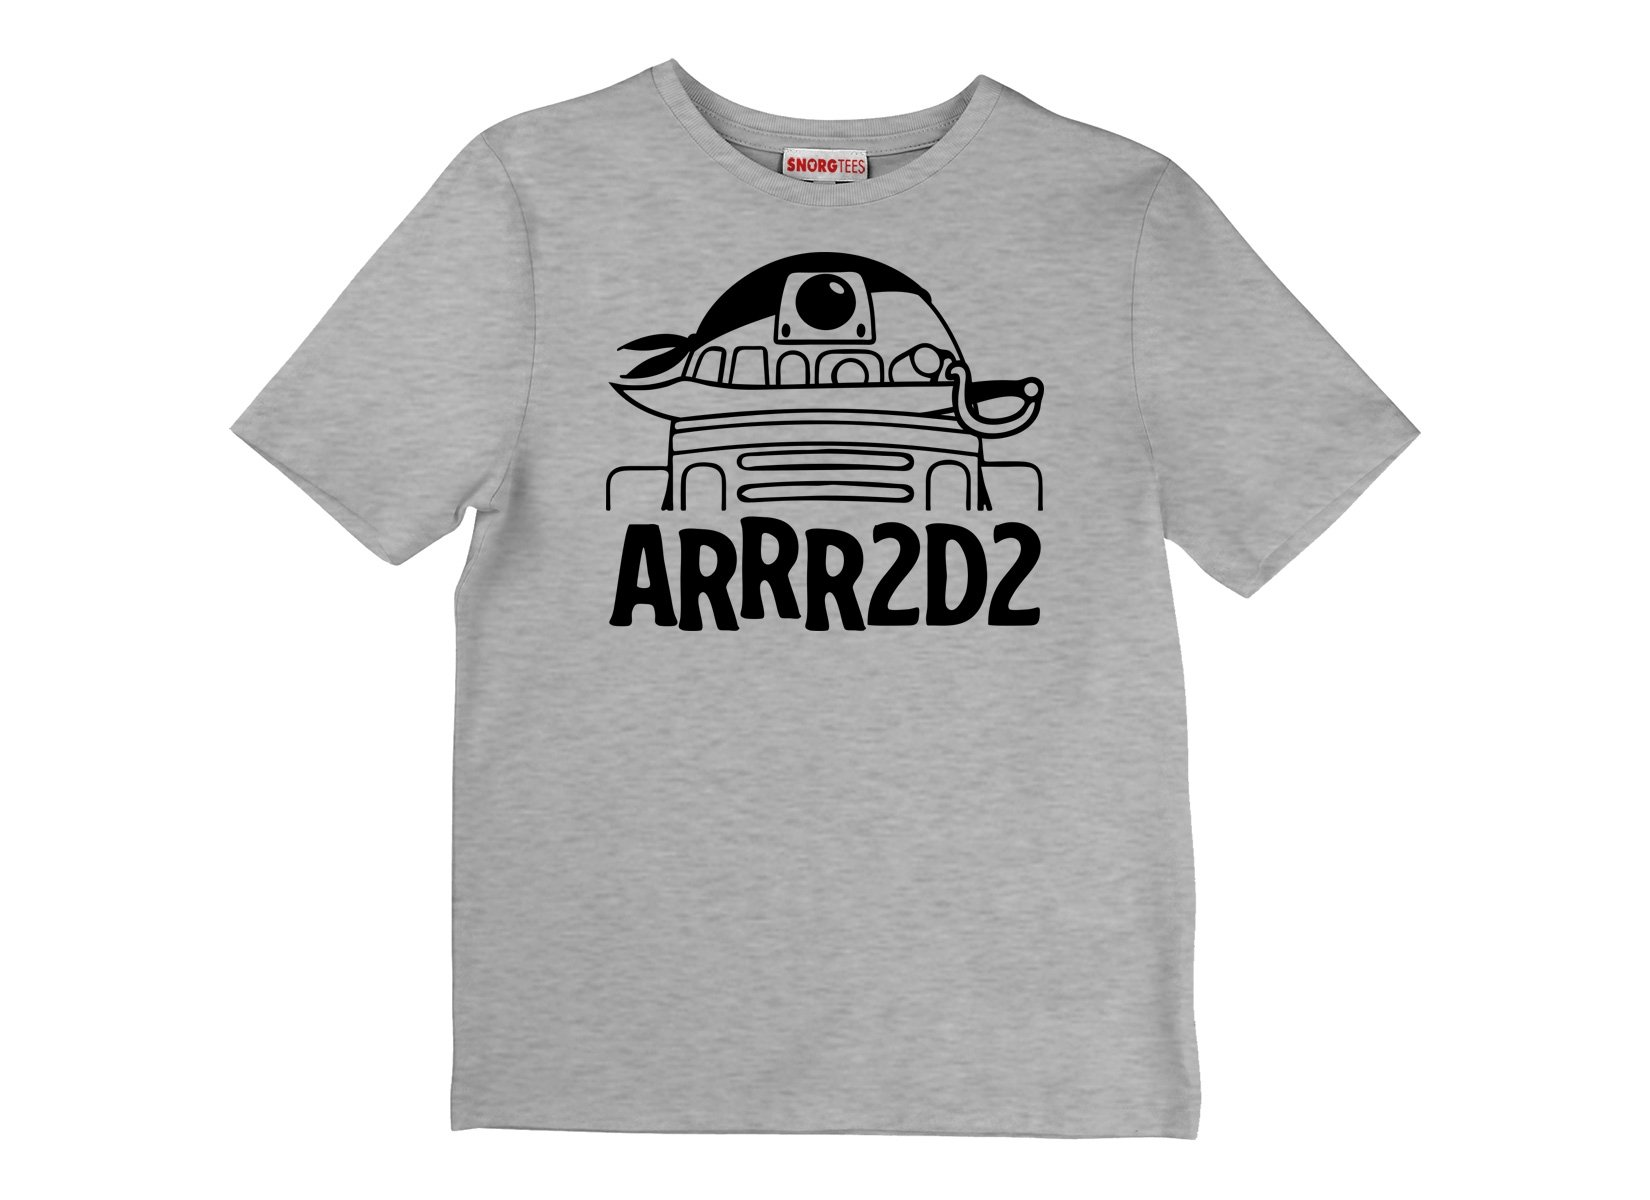 ARRR2D2 on Kids T-Shirt